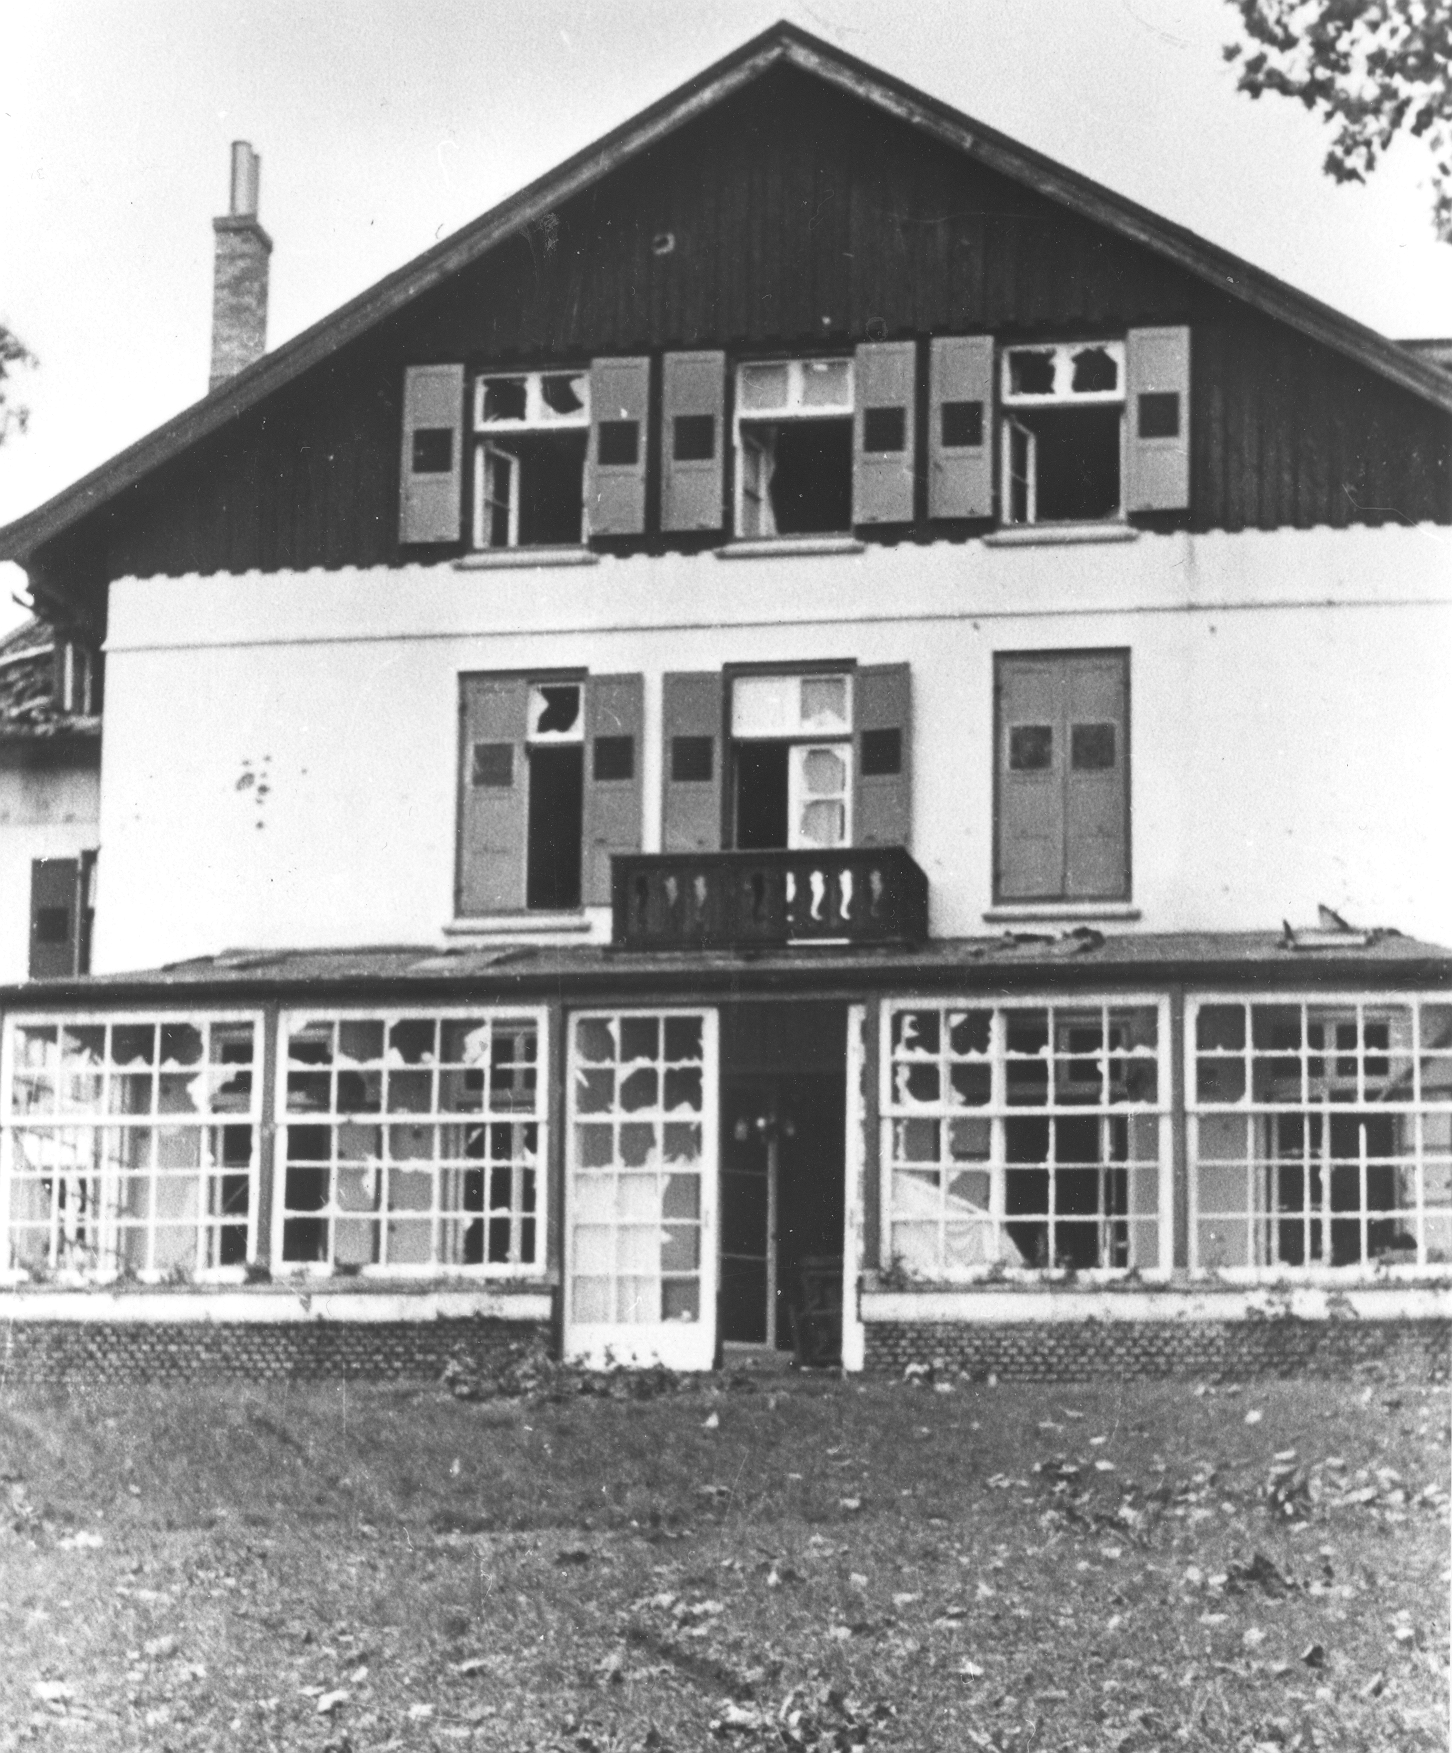 Hotel Dreijeroord The White House 1944